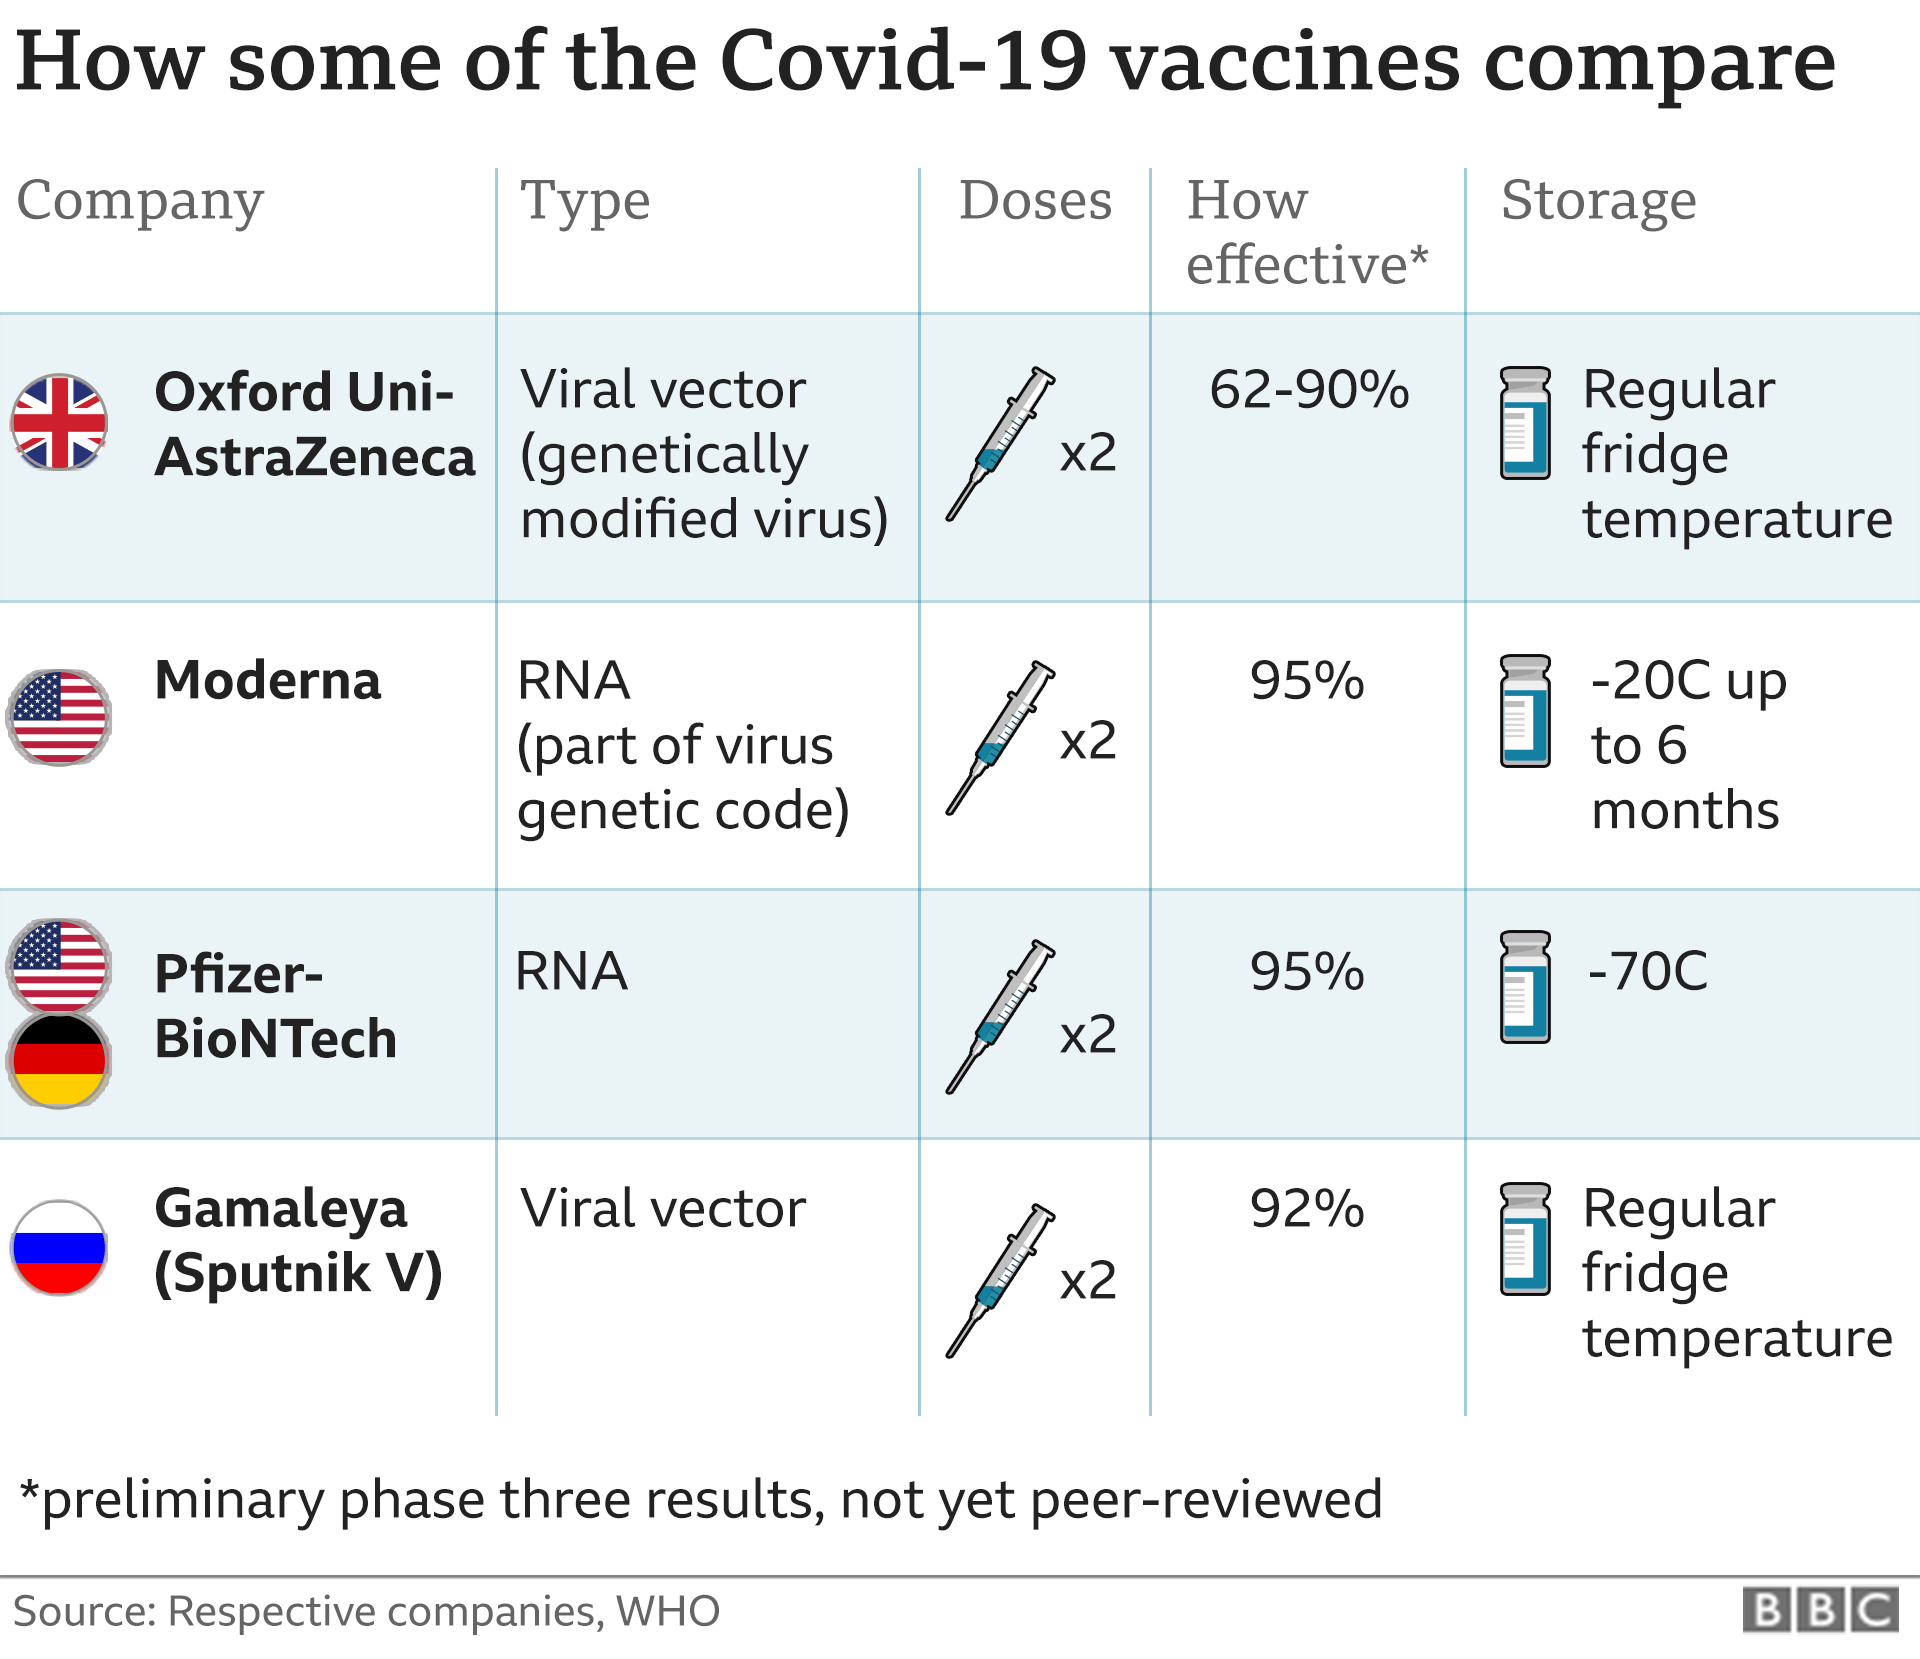 Two full doses of the Oxford vaccine gave 62% protection, a half dose followed by a full dose was 90% and overall the trial showed 70% protection.